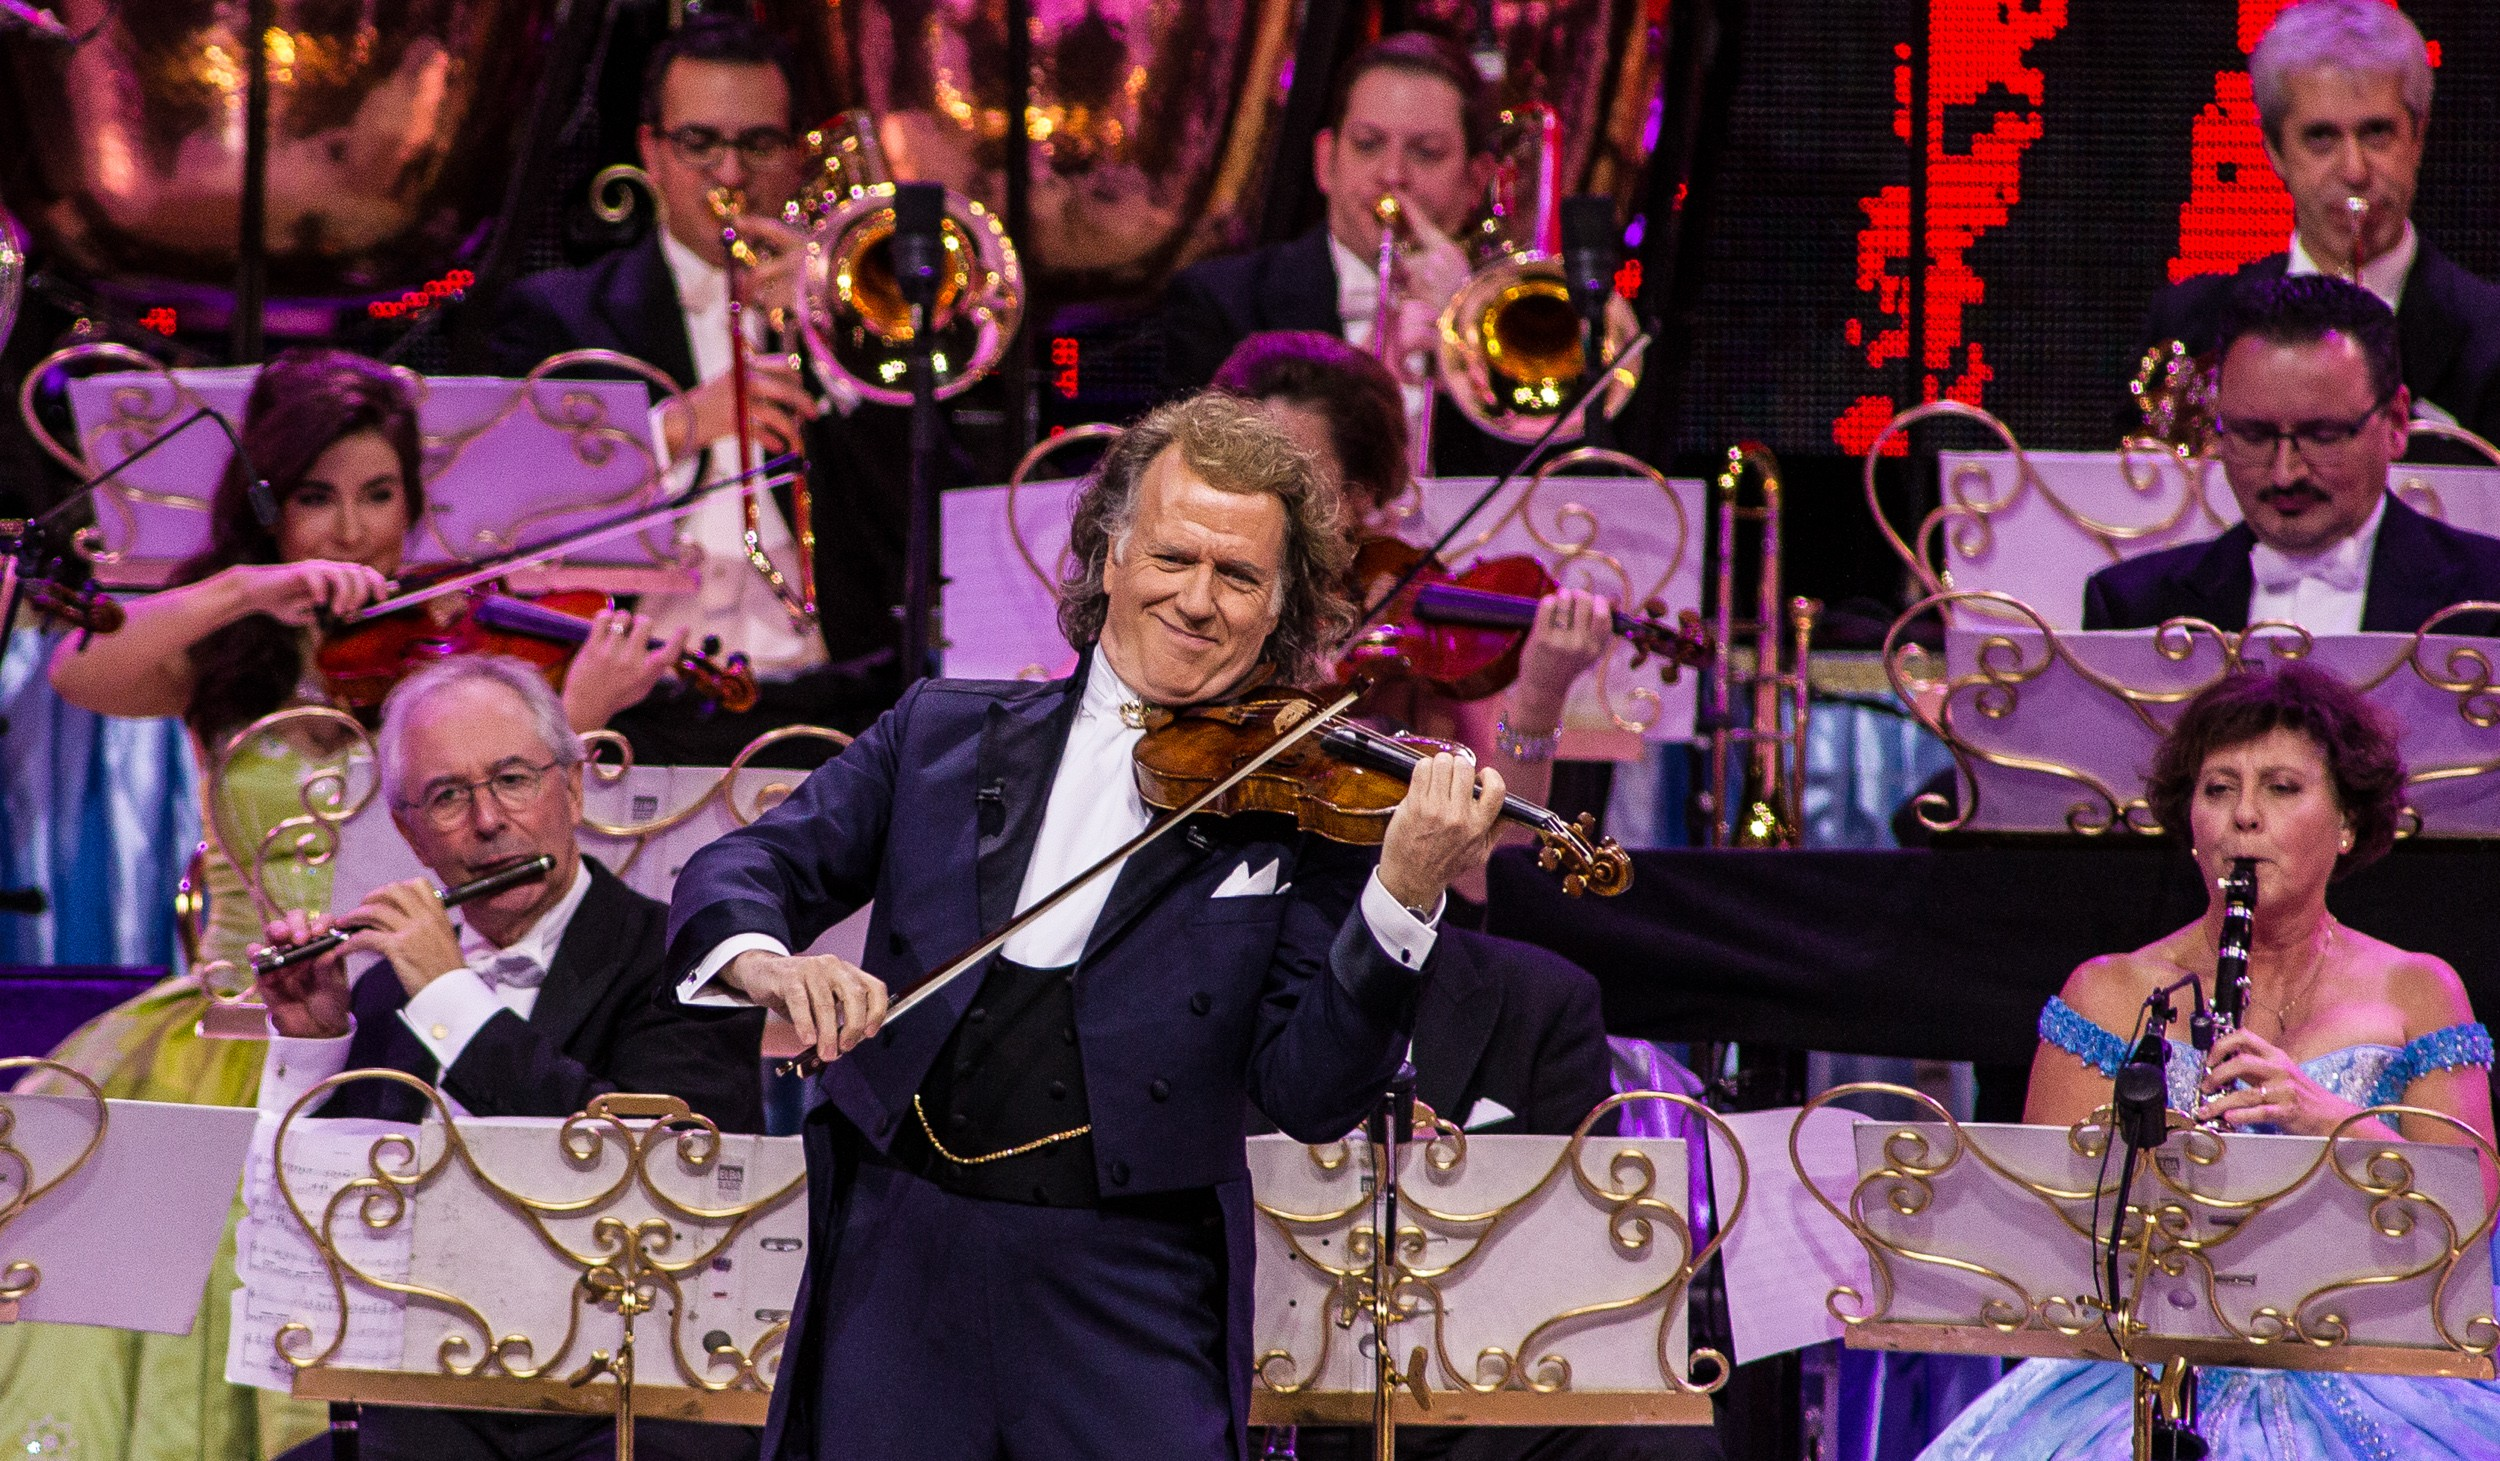 Dutch violinist and conductor Andre Rieu performs at Ziggo Dome, Amsterdam, Netherlands, 6th January 2018. (Photo by Paul Bergen/Redferns)